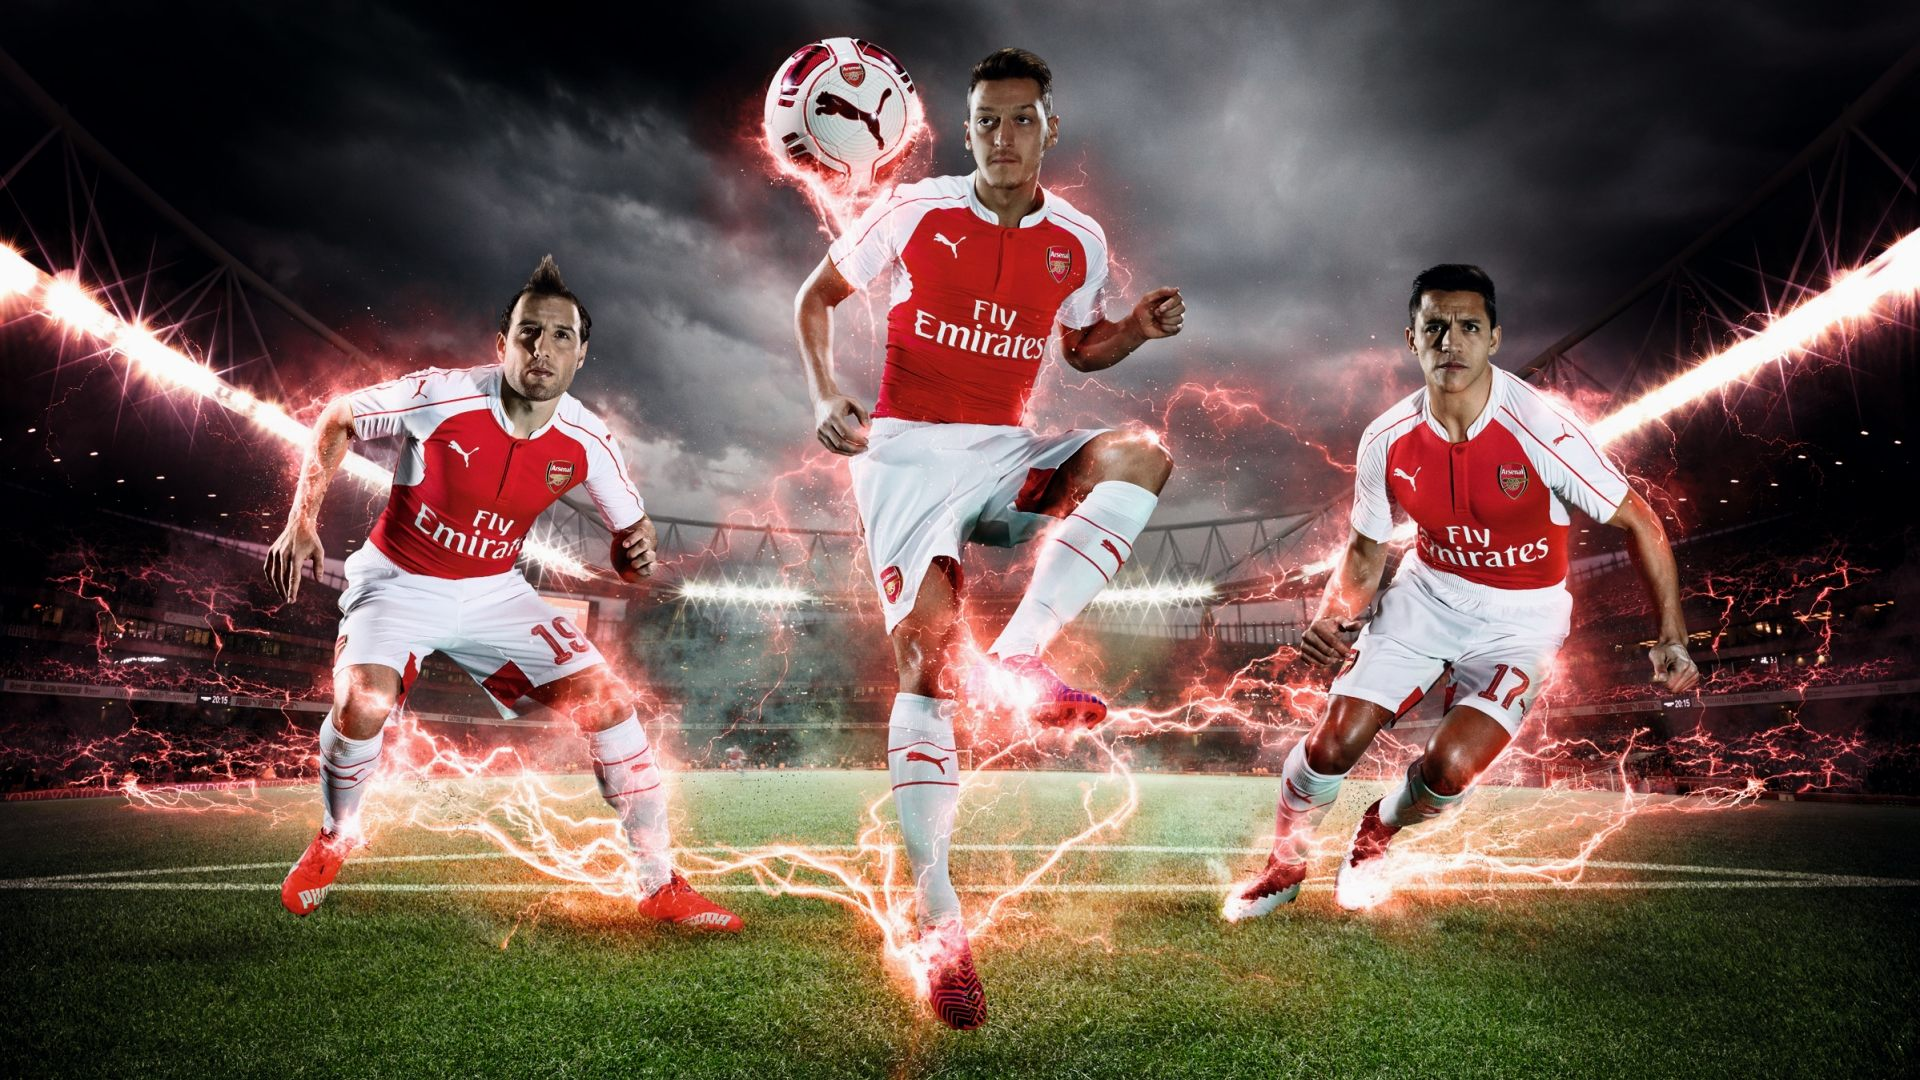 Arsenal Wallpaper 2016 Full Hd Pictures